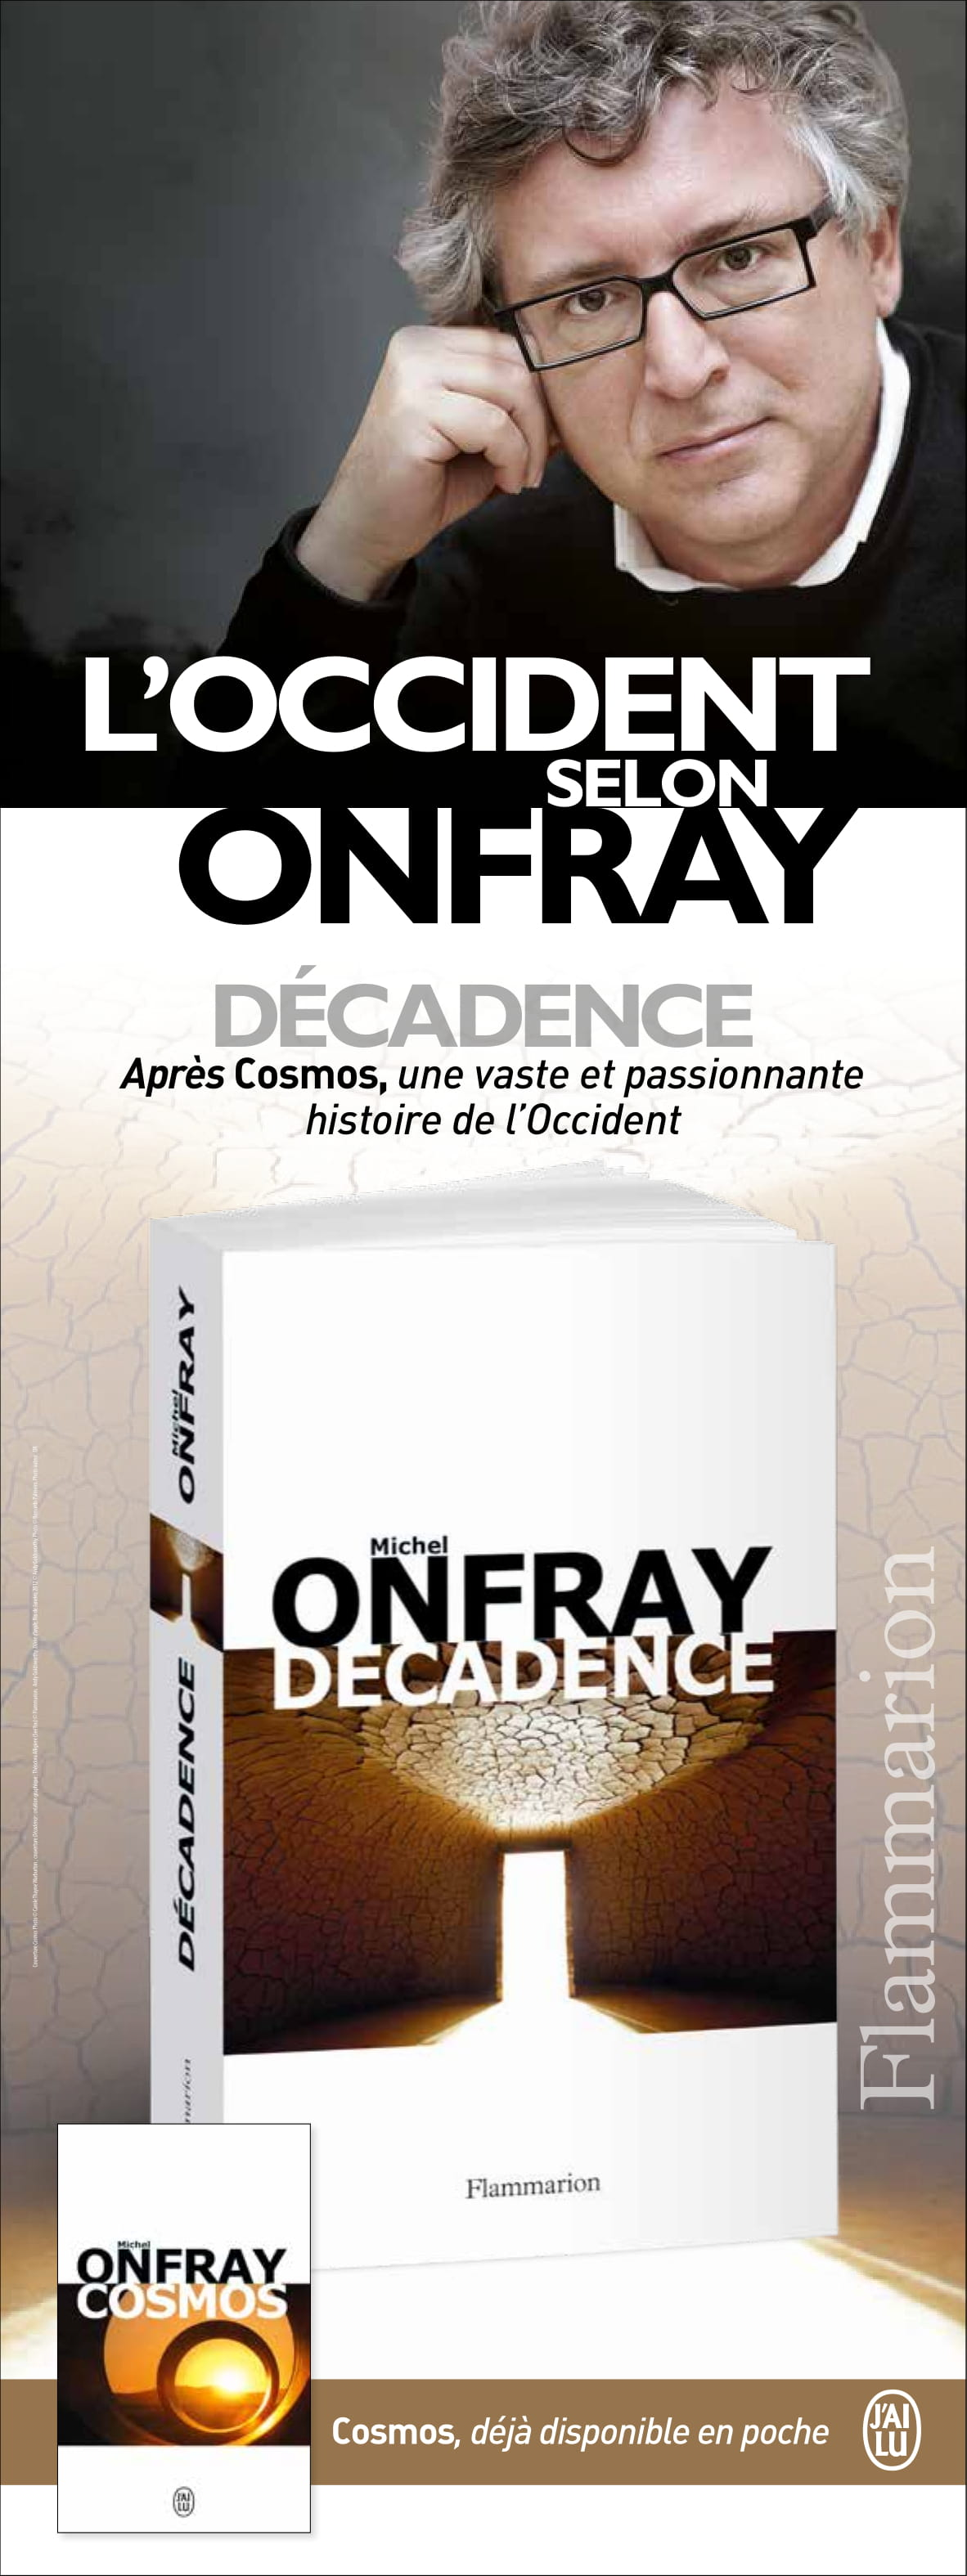 Onfray 1